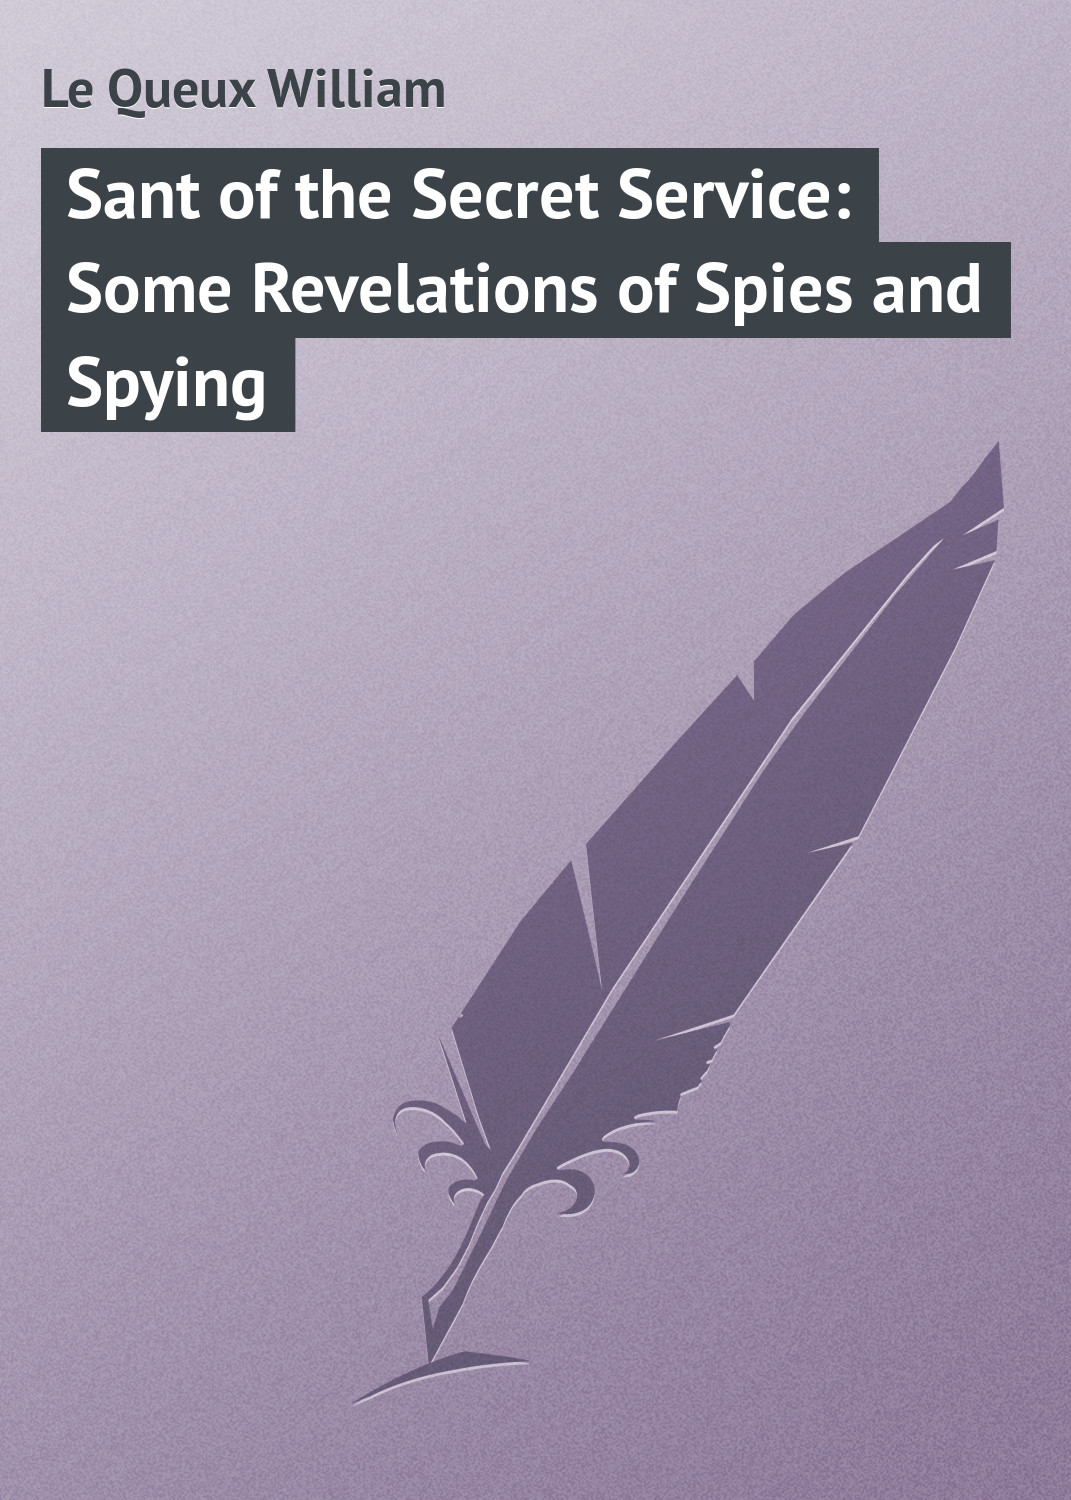 цена на Le Queux William Sant of the Secret Service: Some Revelations of Spies and Spying